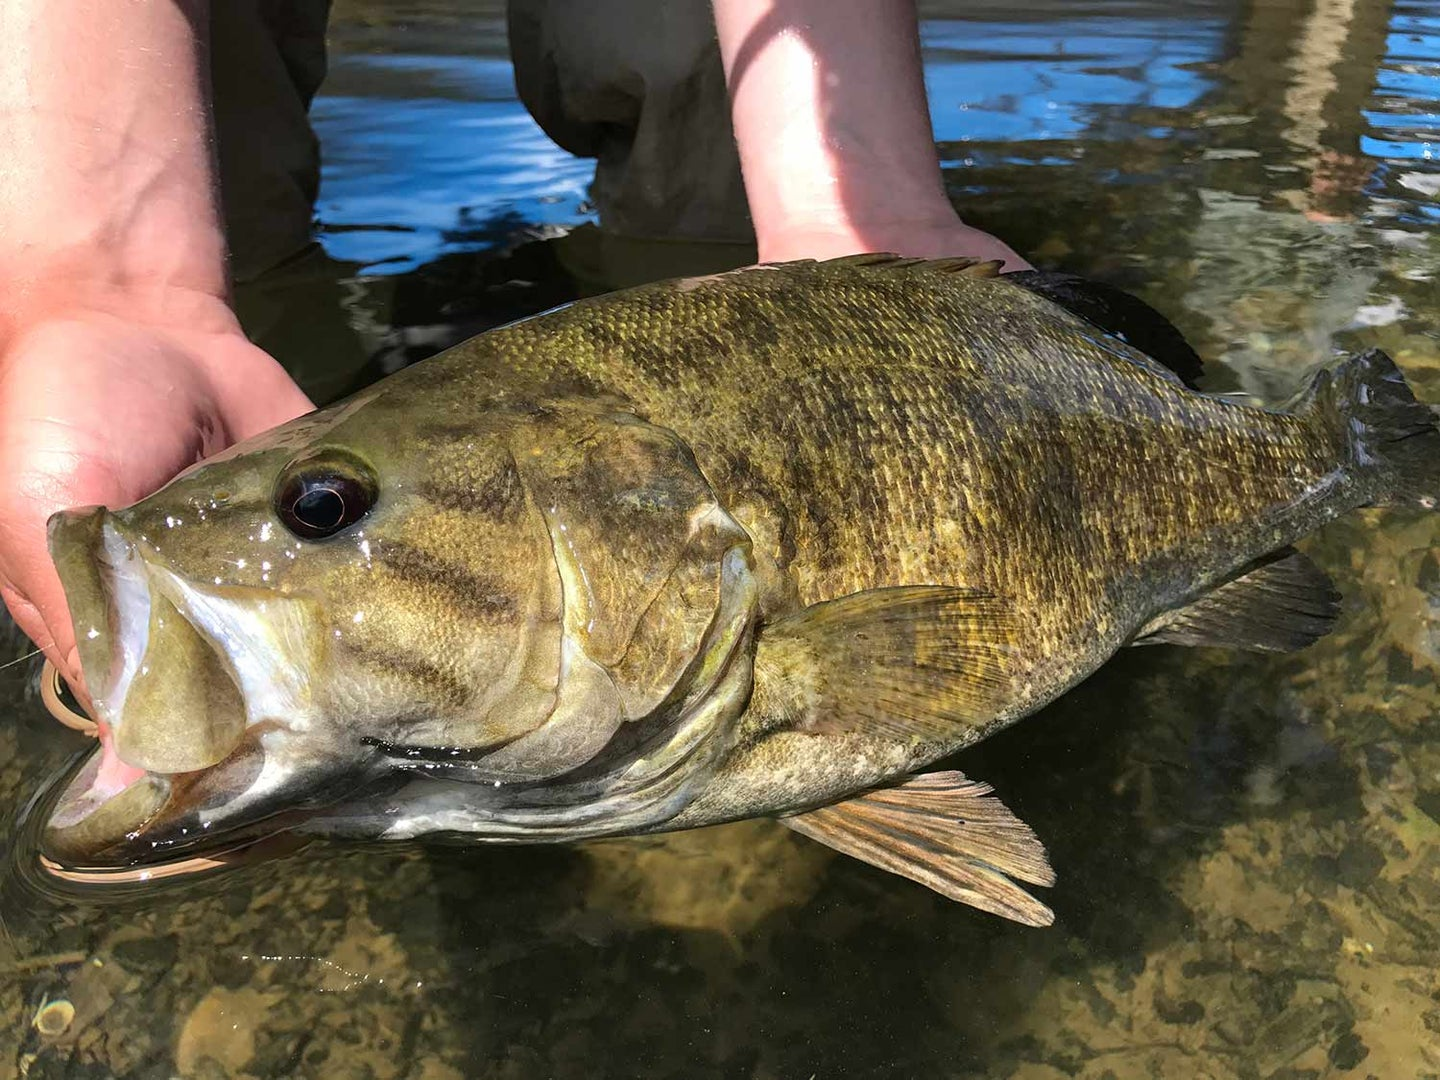 an angler holding a smallmouth bass in a river